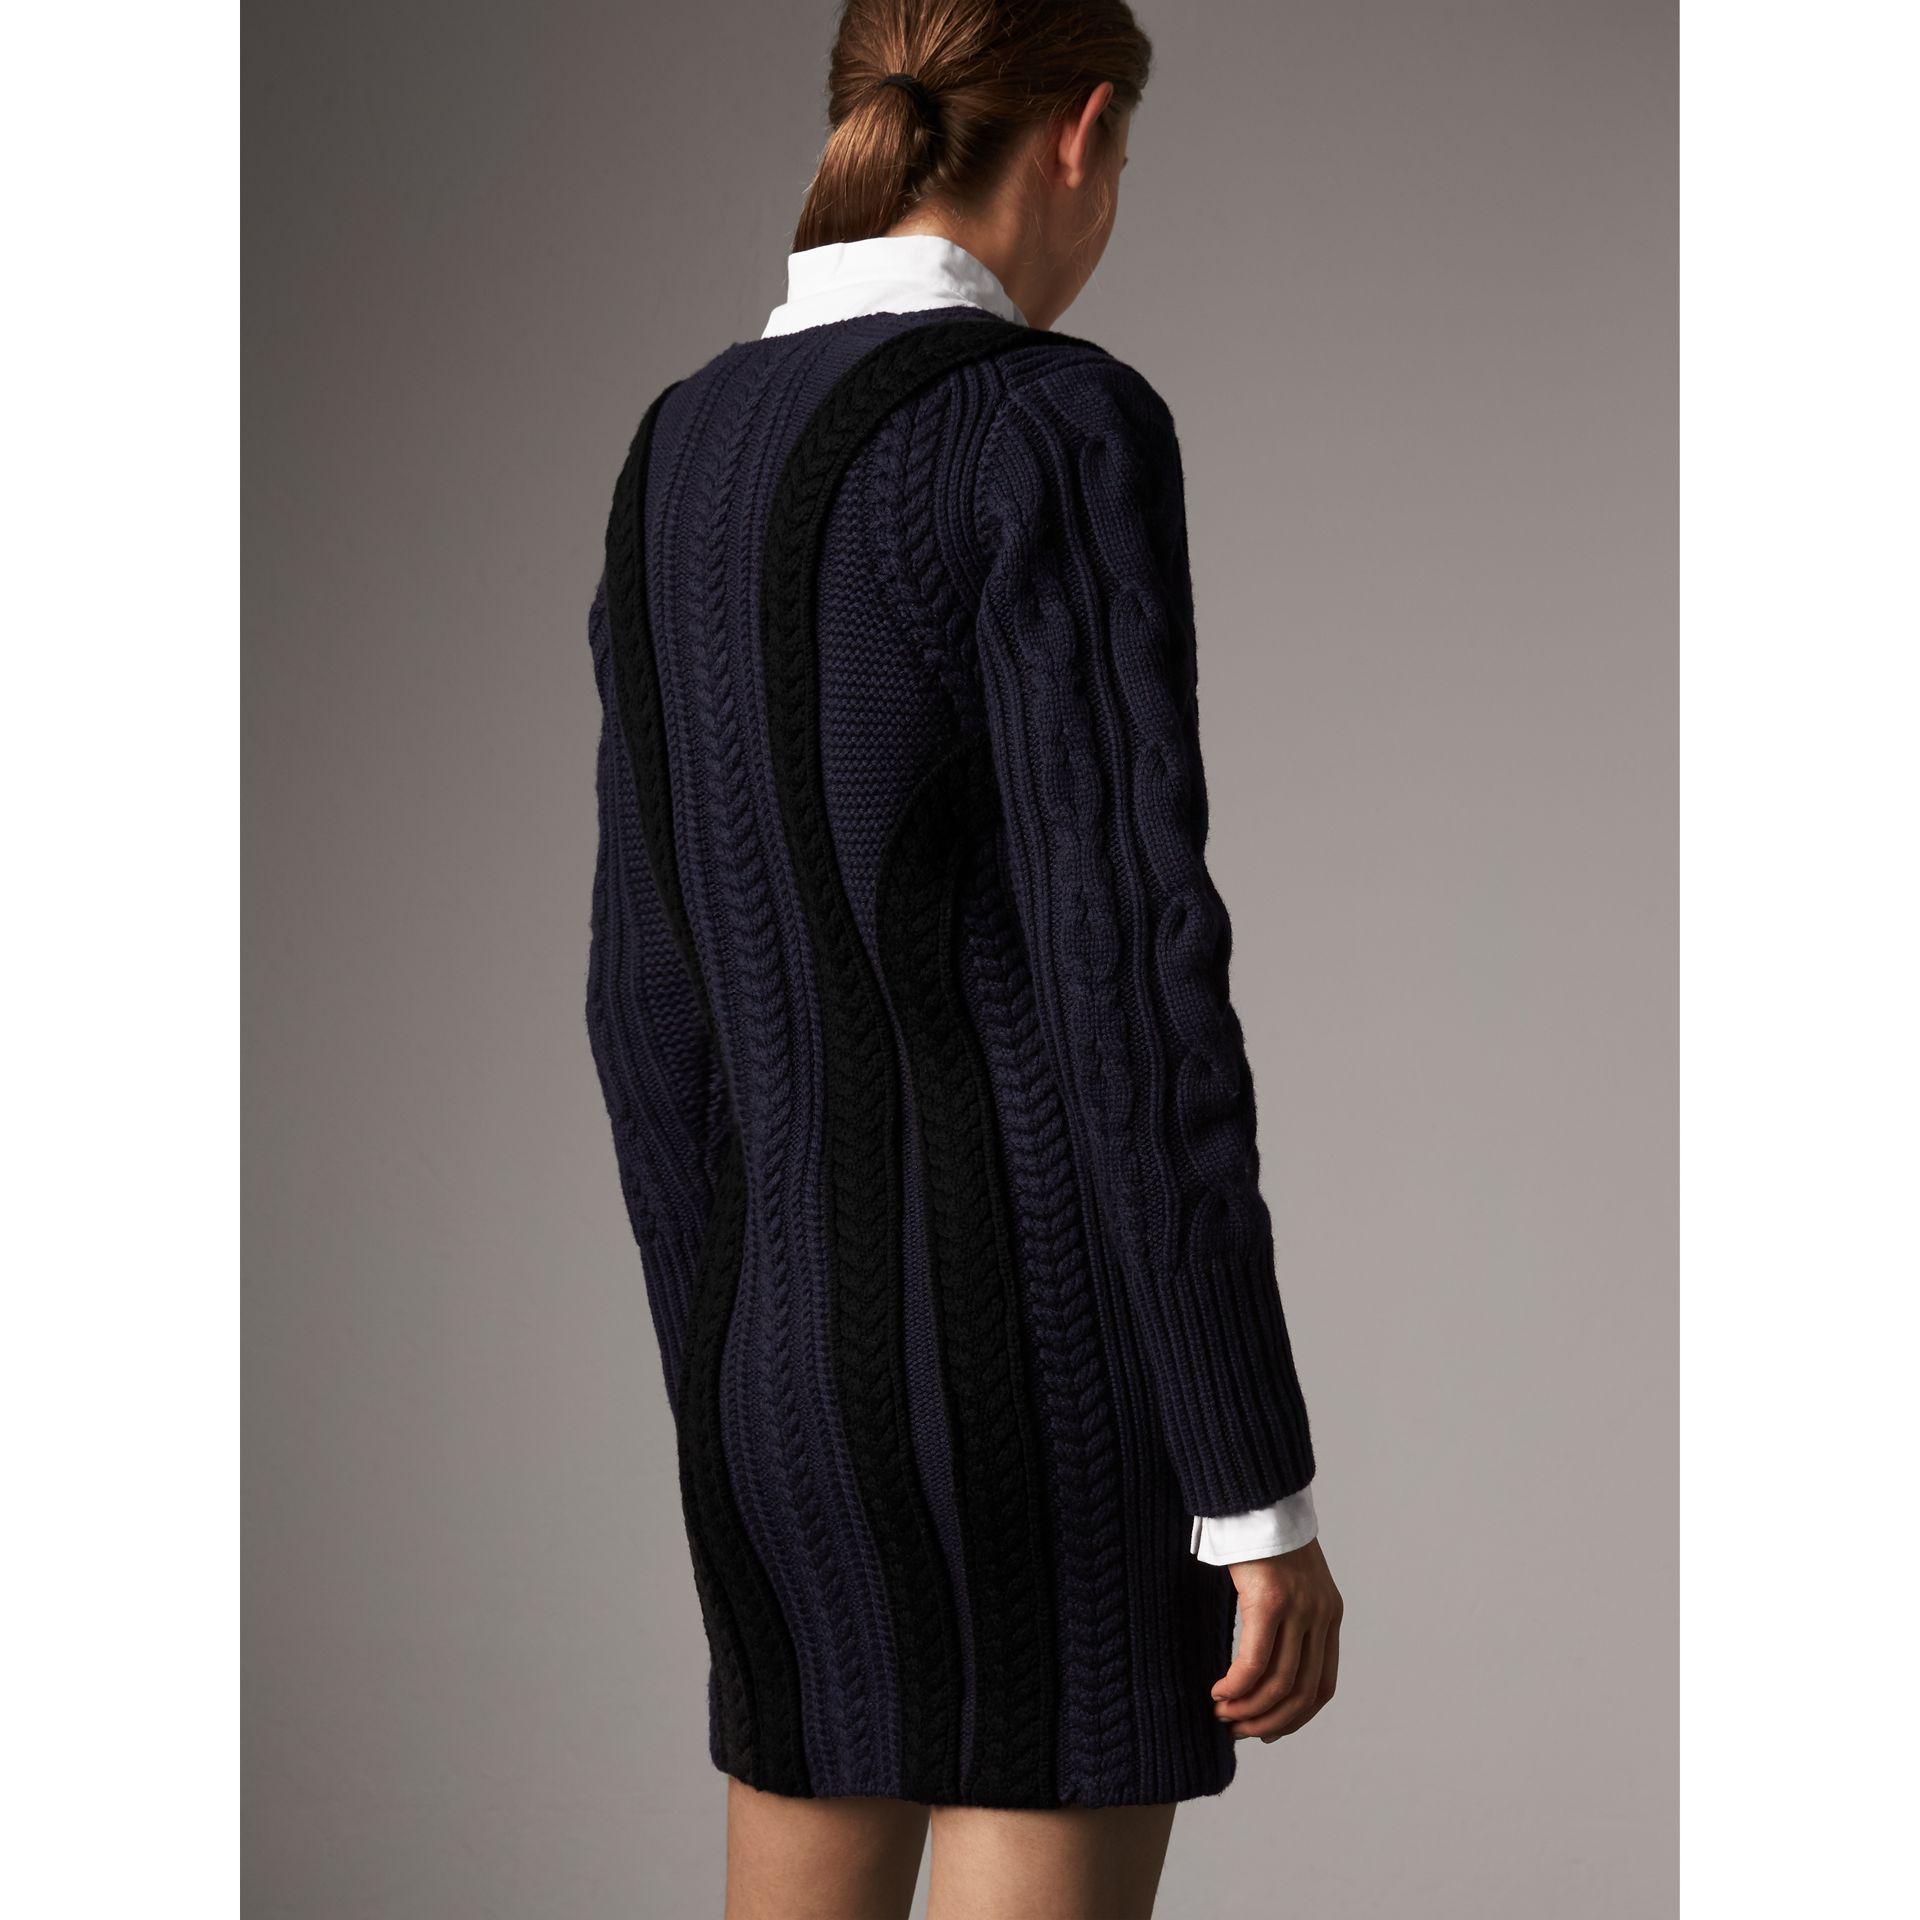 Cable Knit Wool Cashmere Sweater Dress in Navy - Women | Burberry - gallery image 3